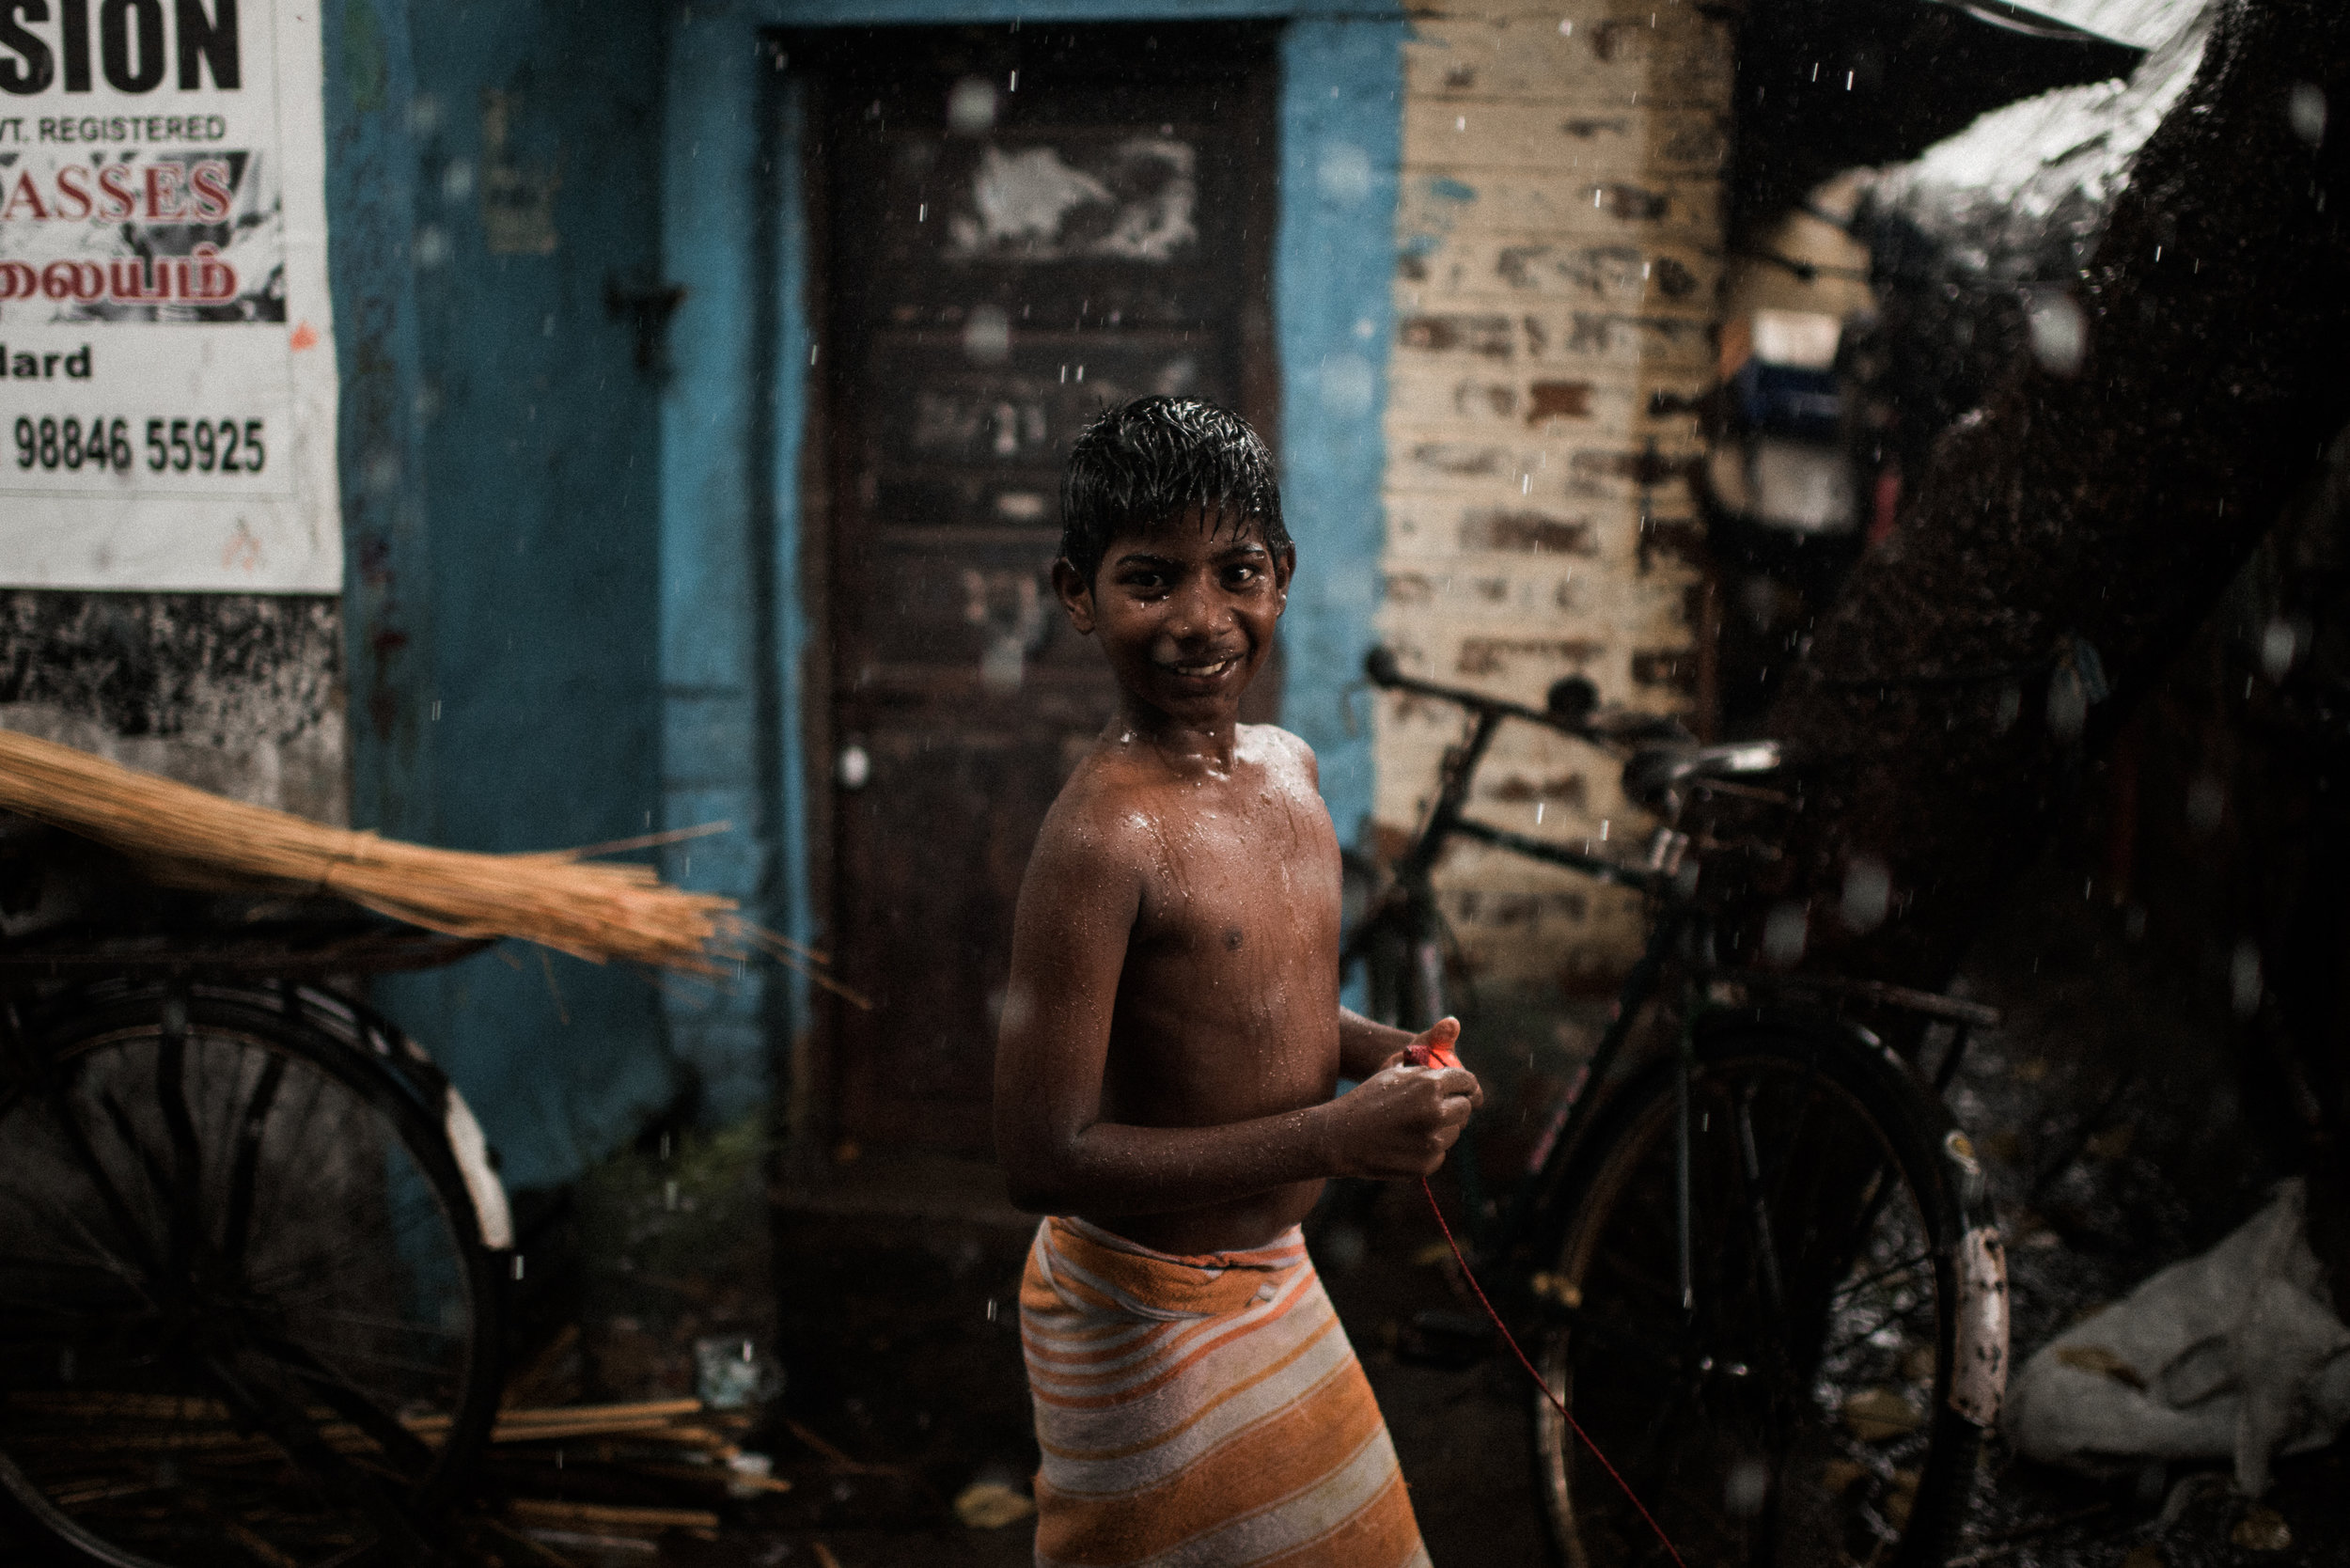 Chennai_India_NatGeo_Woman_Photographer_Humanitarian_001.jpg